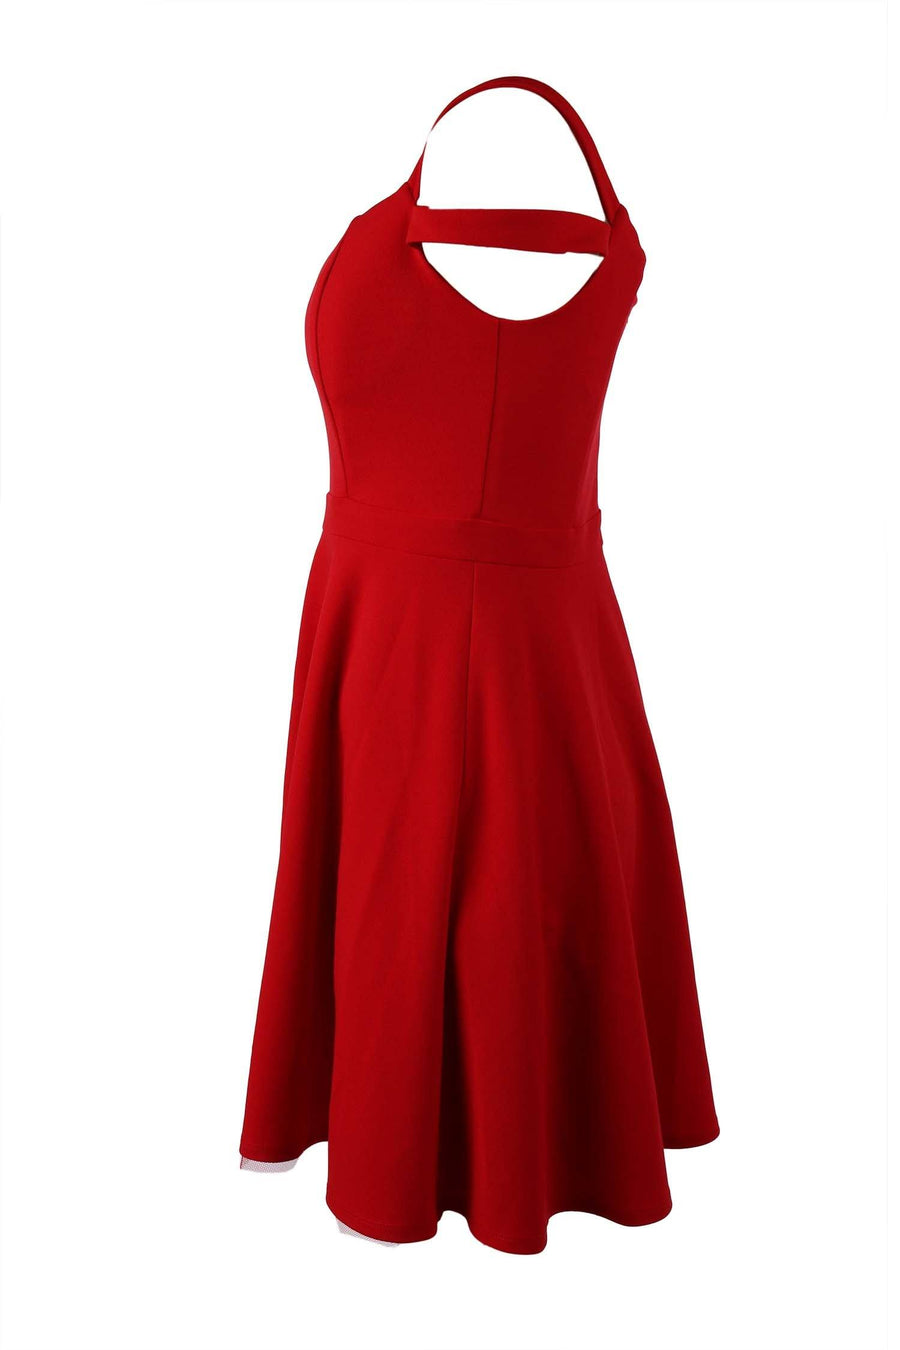 Tyler V-neck Dress in Red